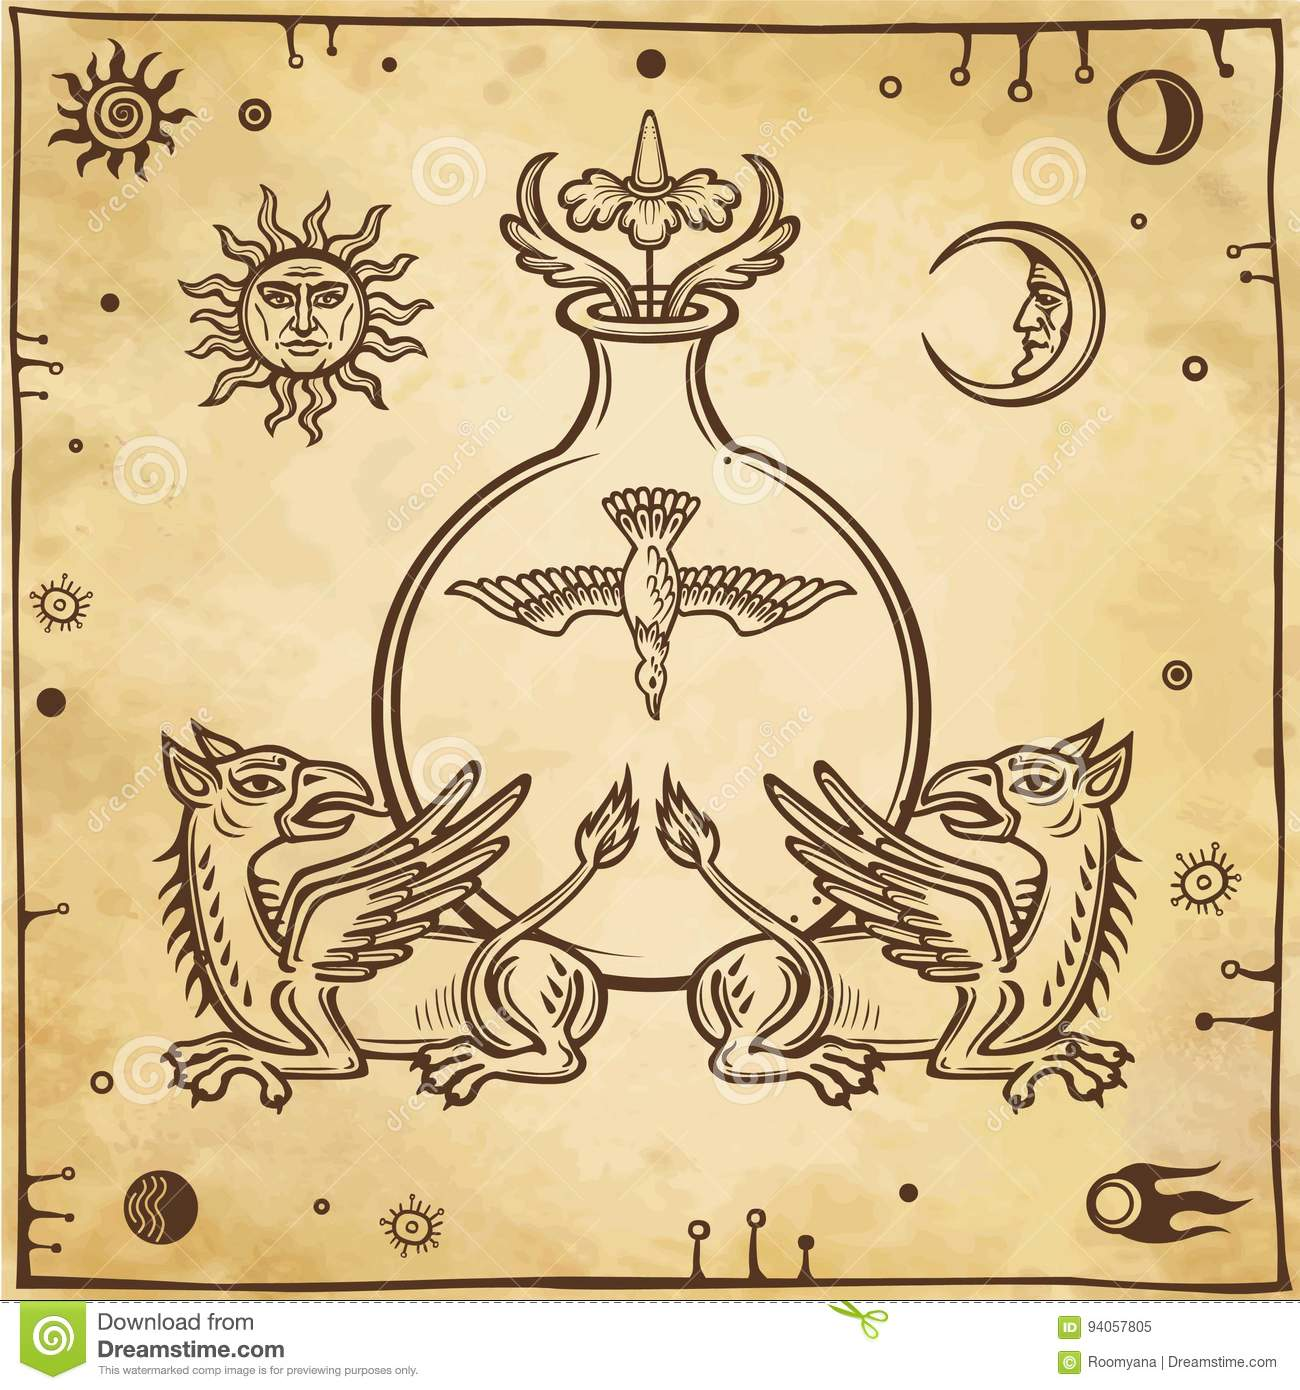 Set Of Alchemical Symbols Mythical Dragons Protect A Test Tube With